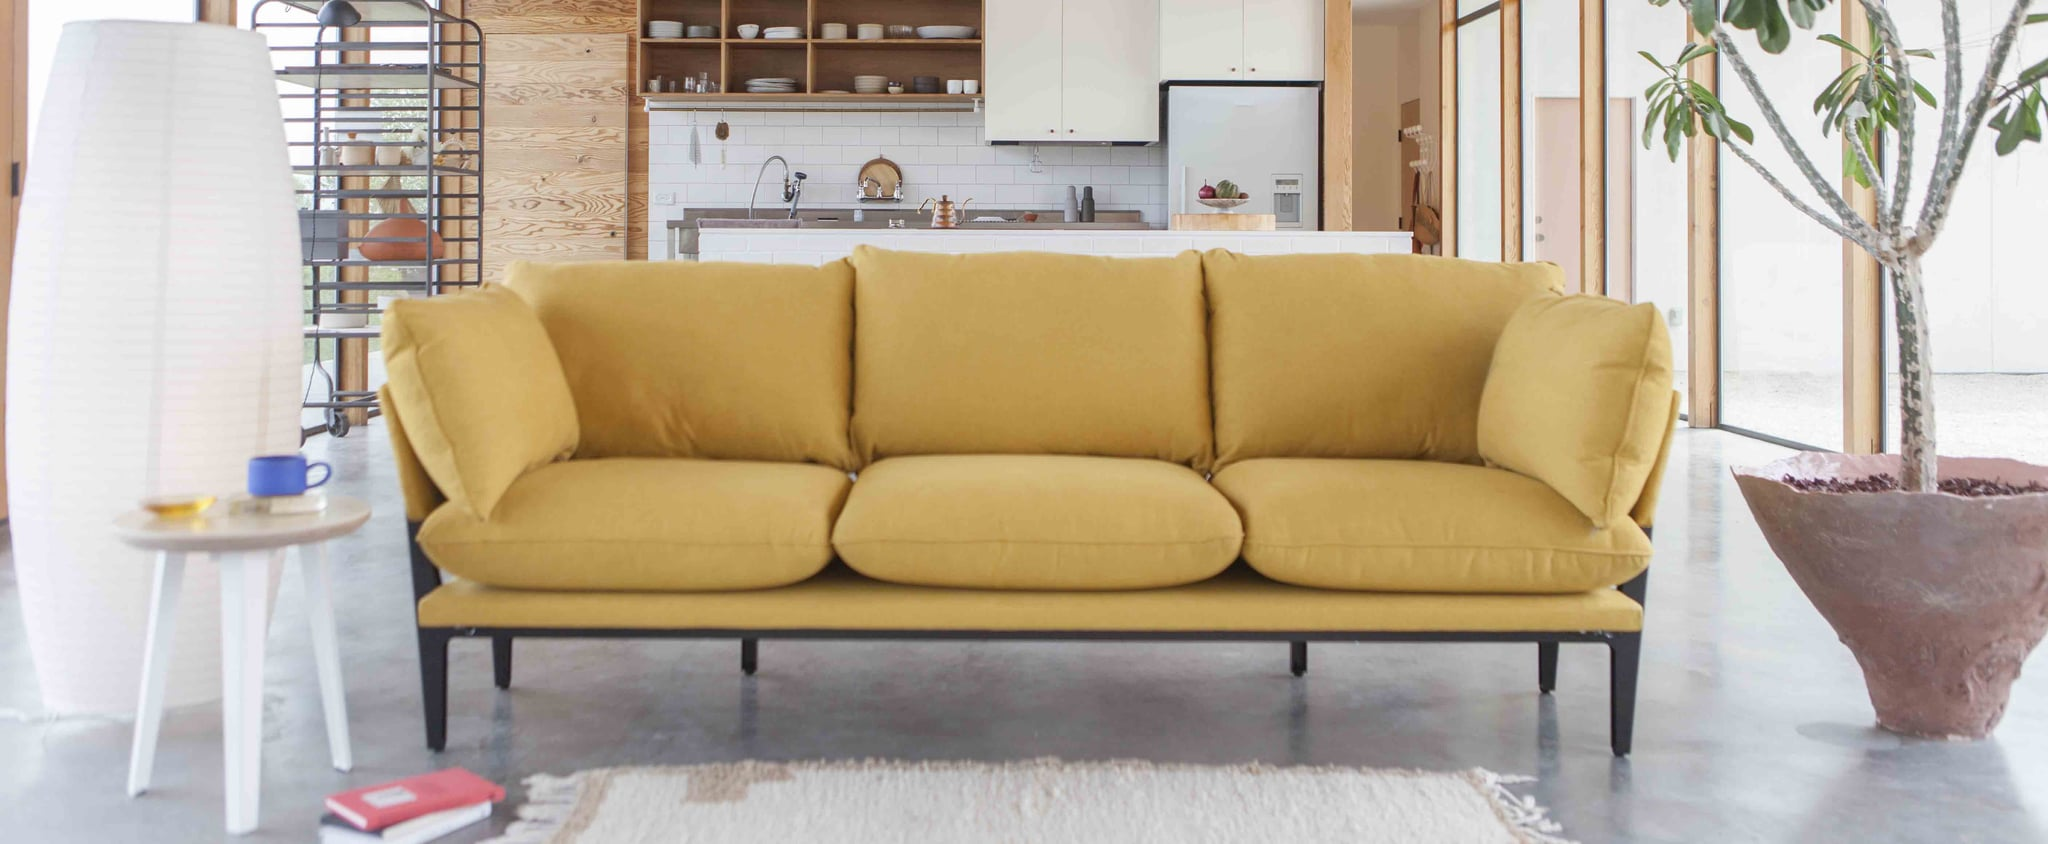 Best and Most Comfortable Mid-Century Modern Sofas